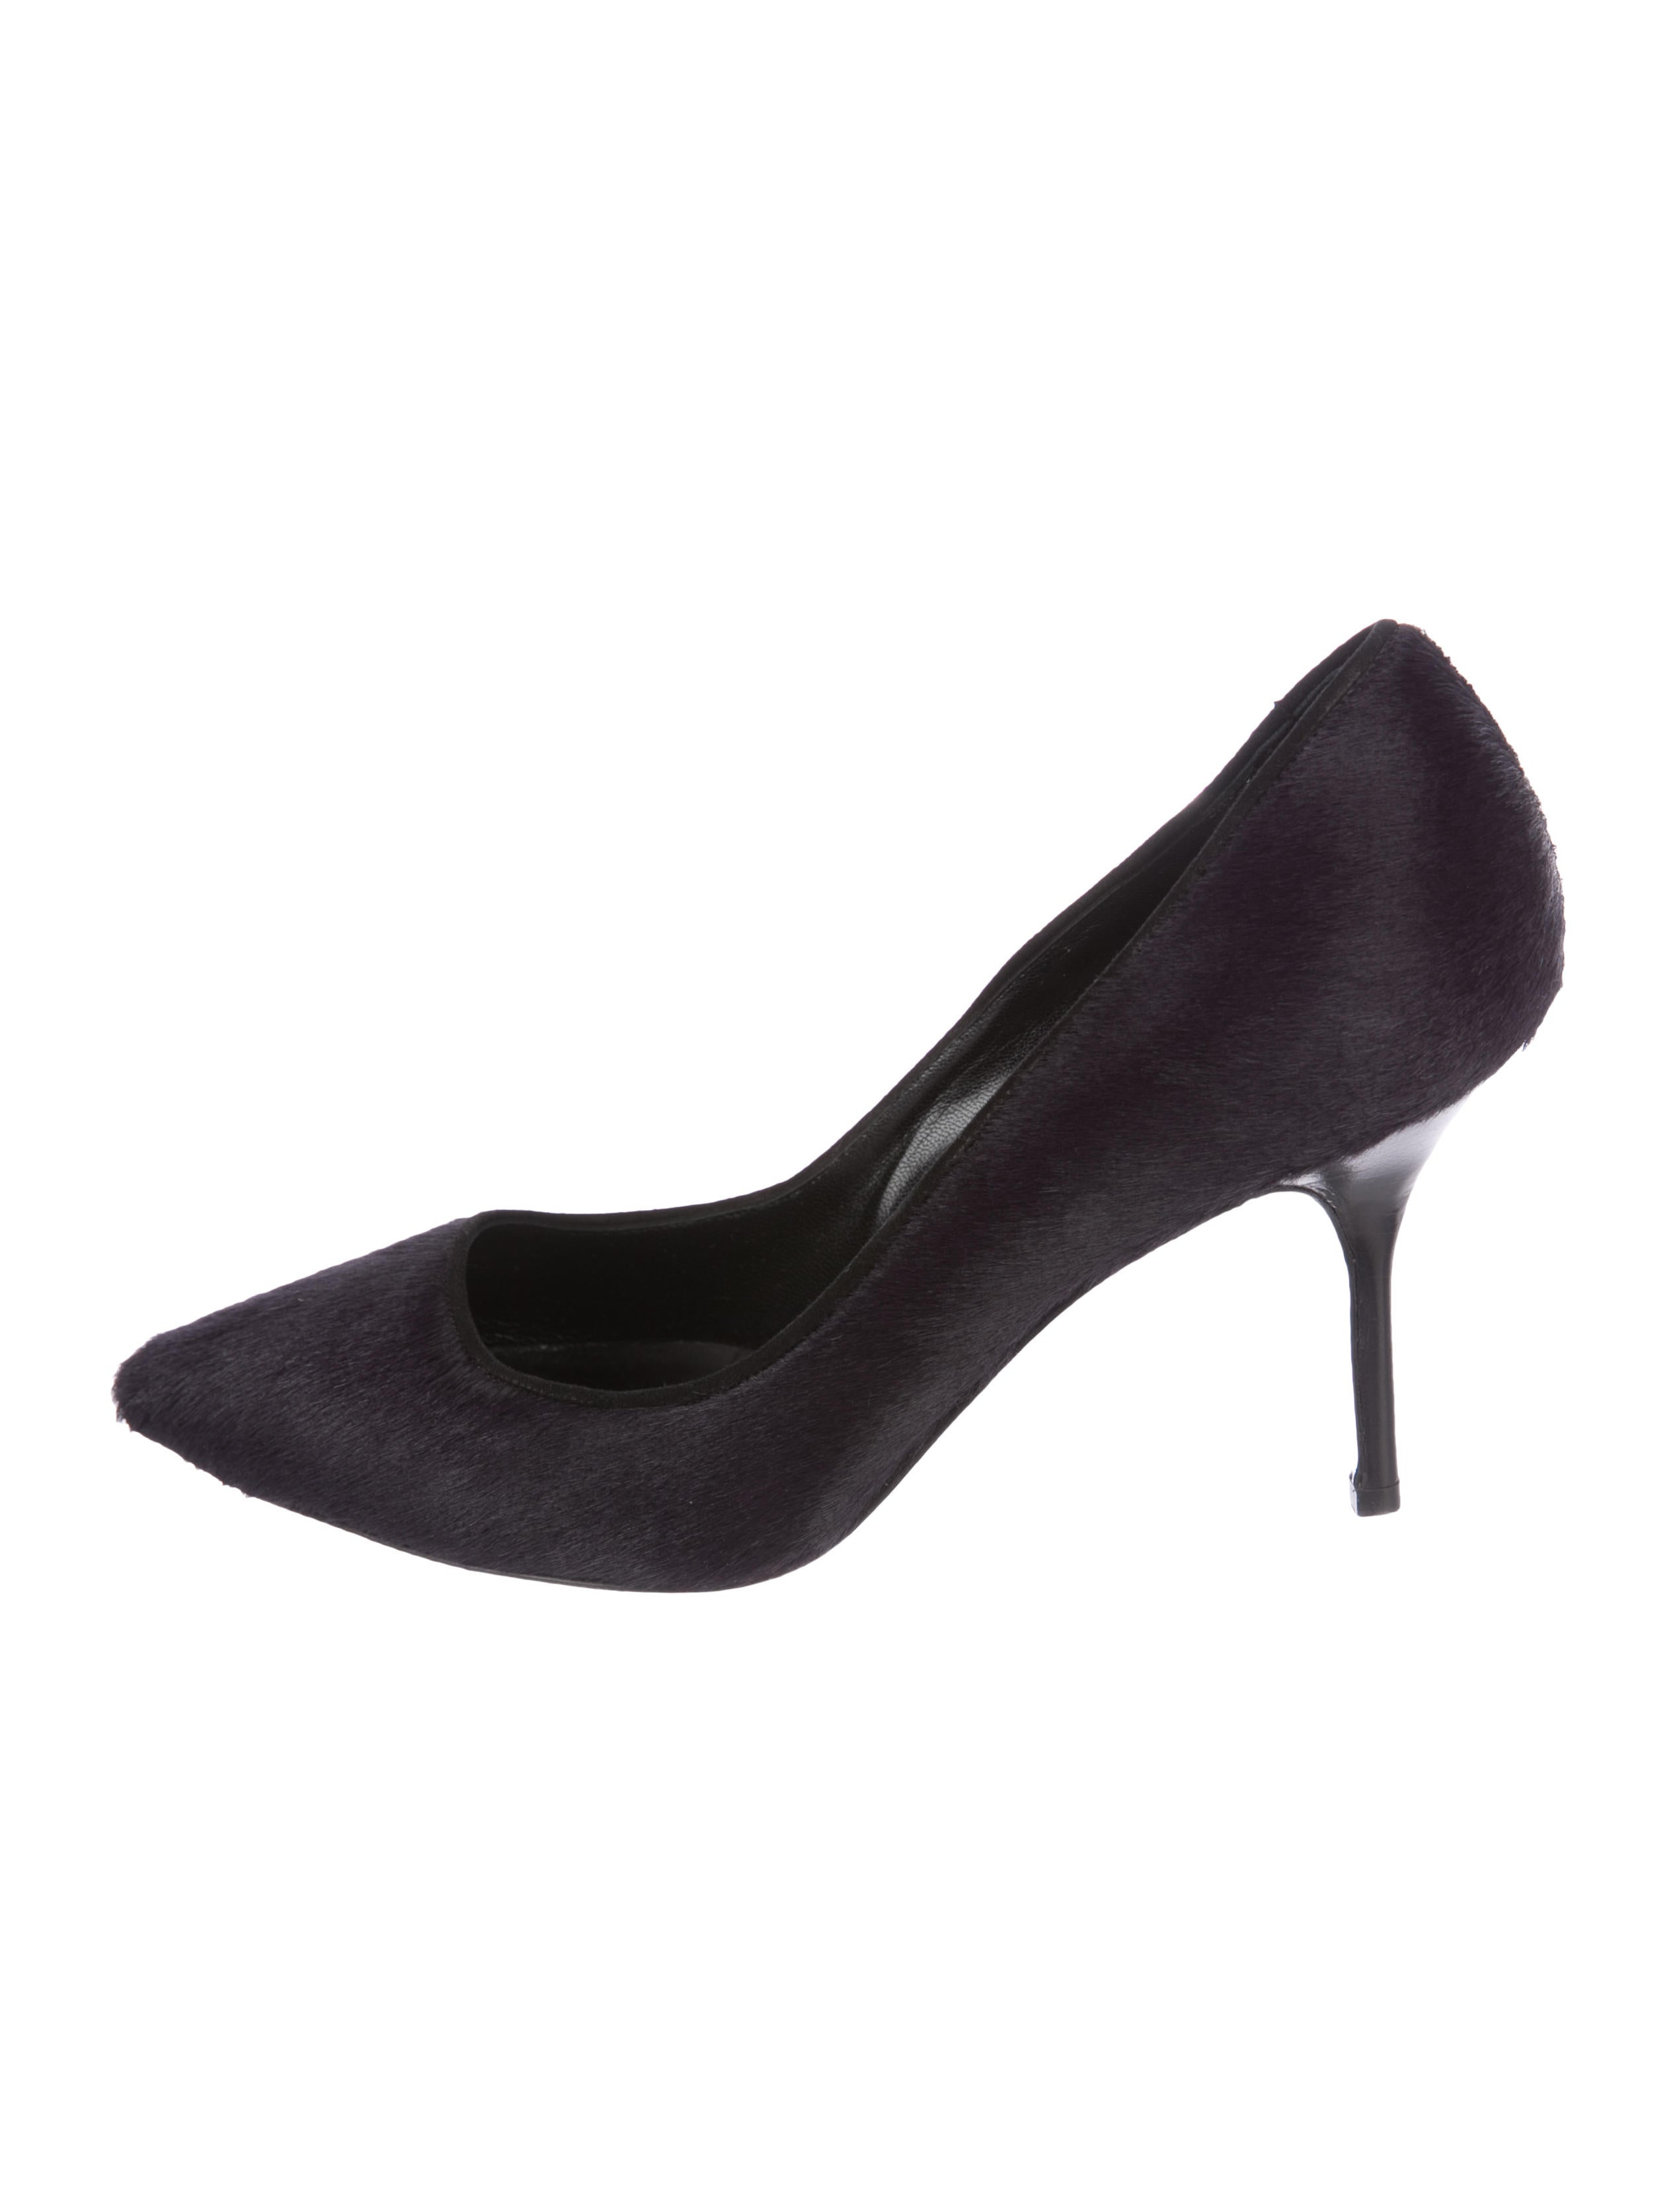 Pierre Hardy Ponyhair Pointed-Toe Pumps discount wholesale price yL2PFosN